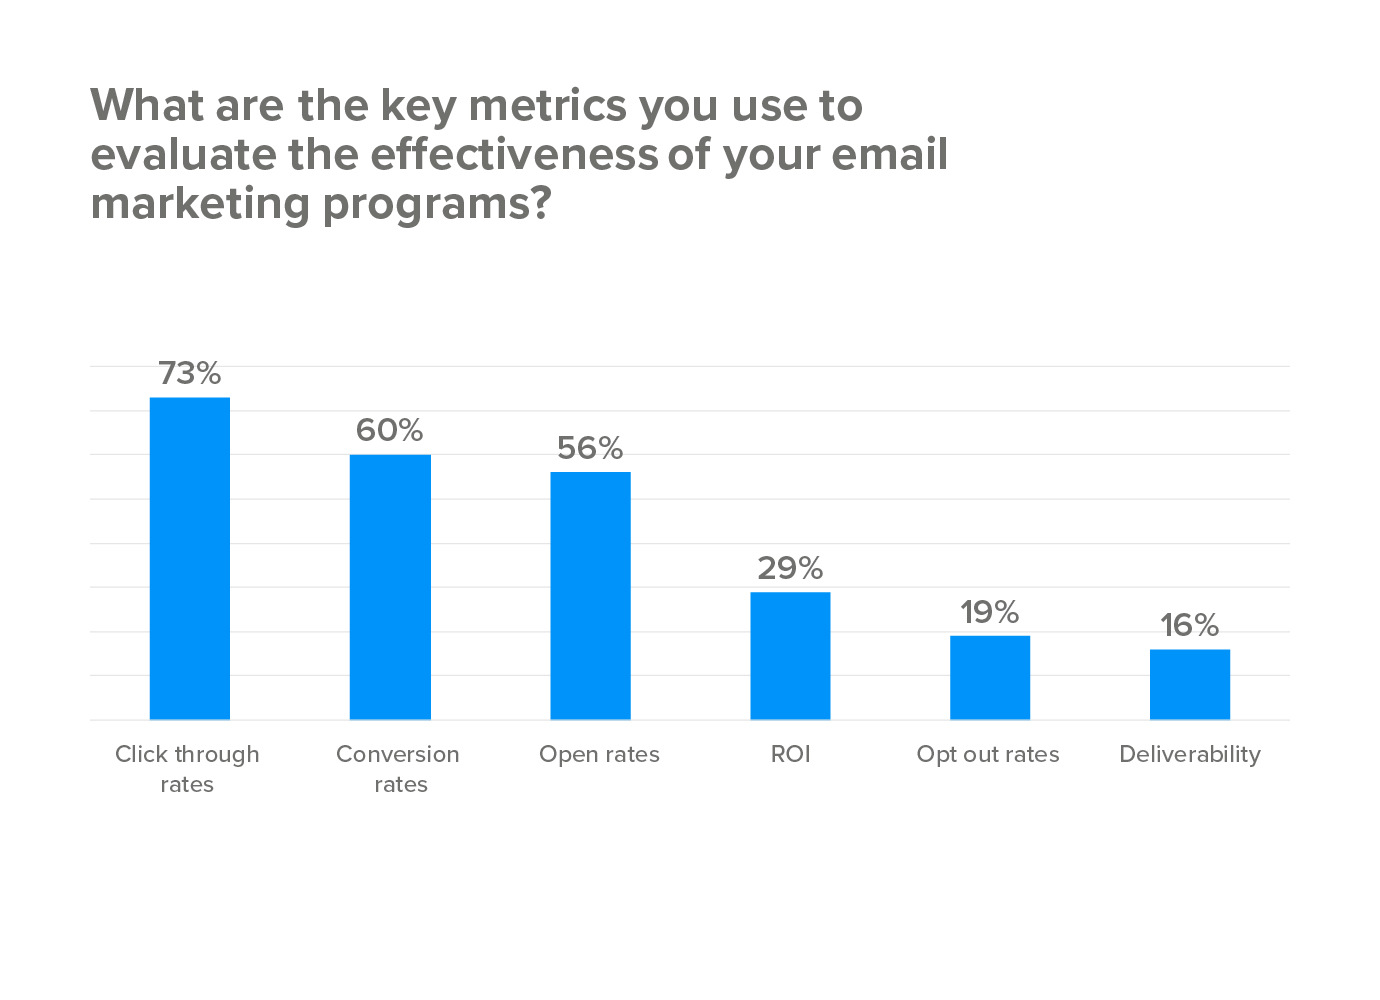 What are the key metrics you use to evaluate the effectiveness of your email marketing programs?